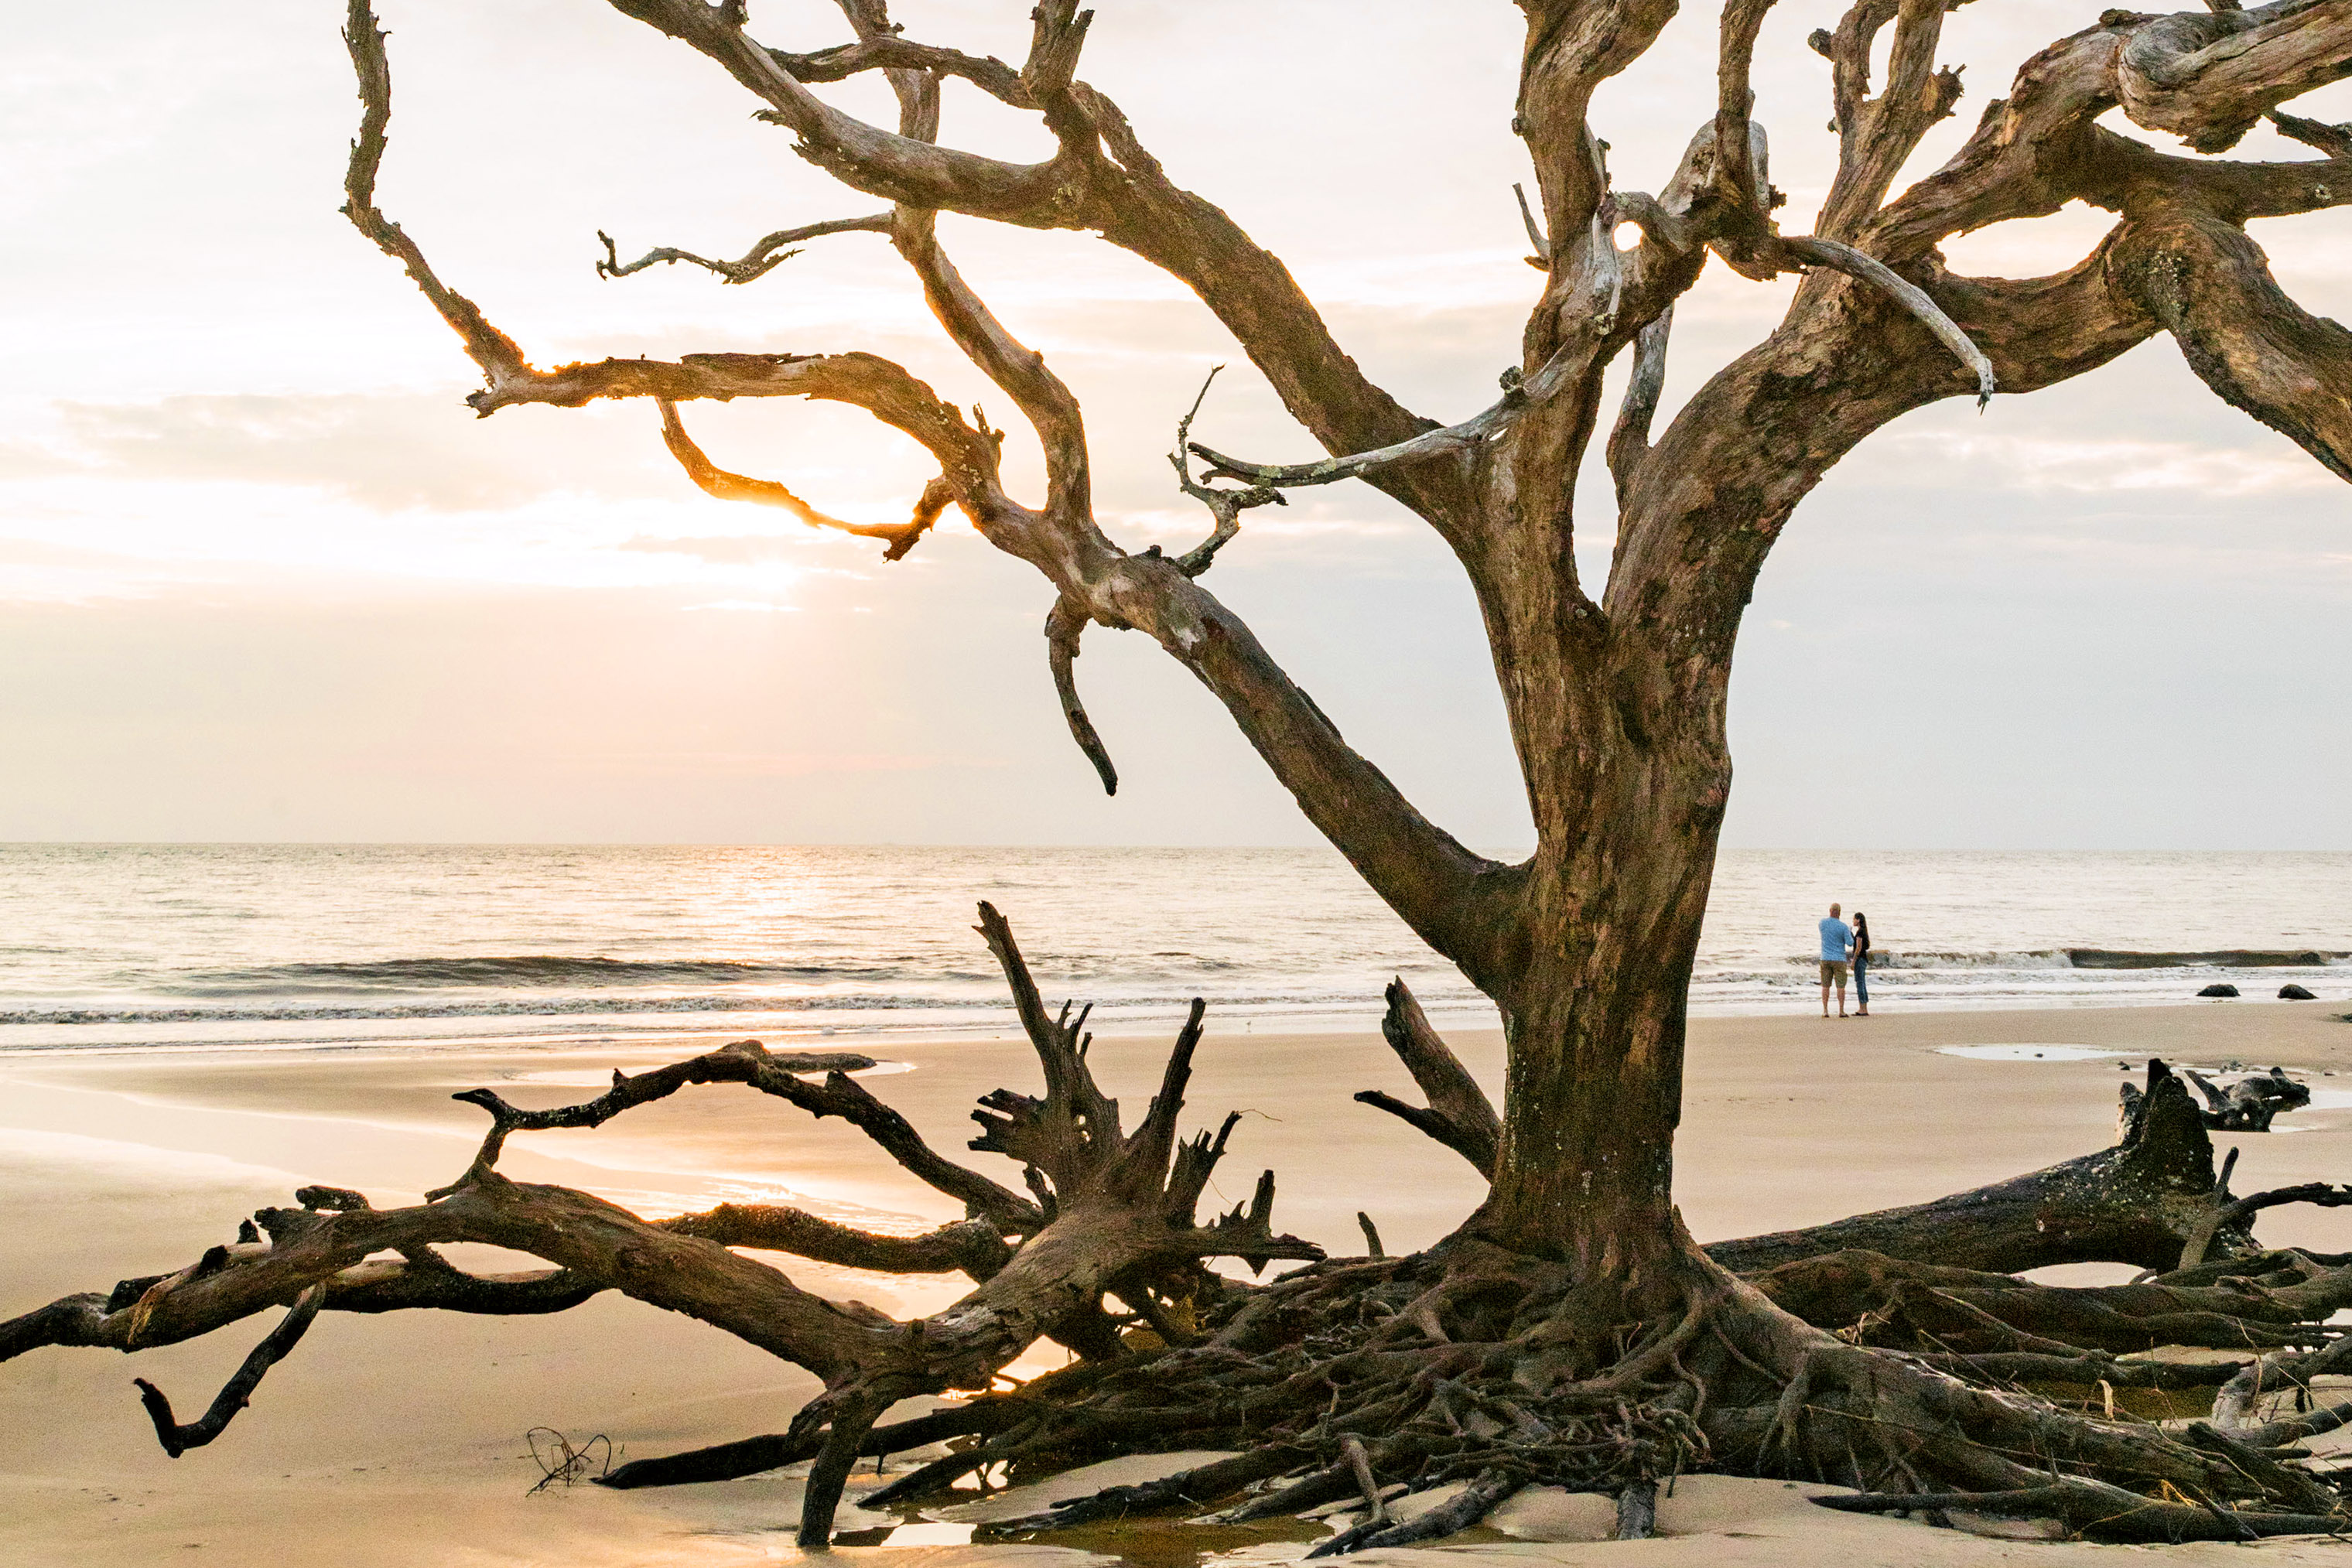 Jekyll Island's Driftwood Beach features a shoreline unlike any other.